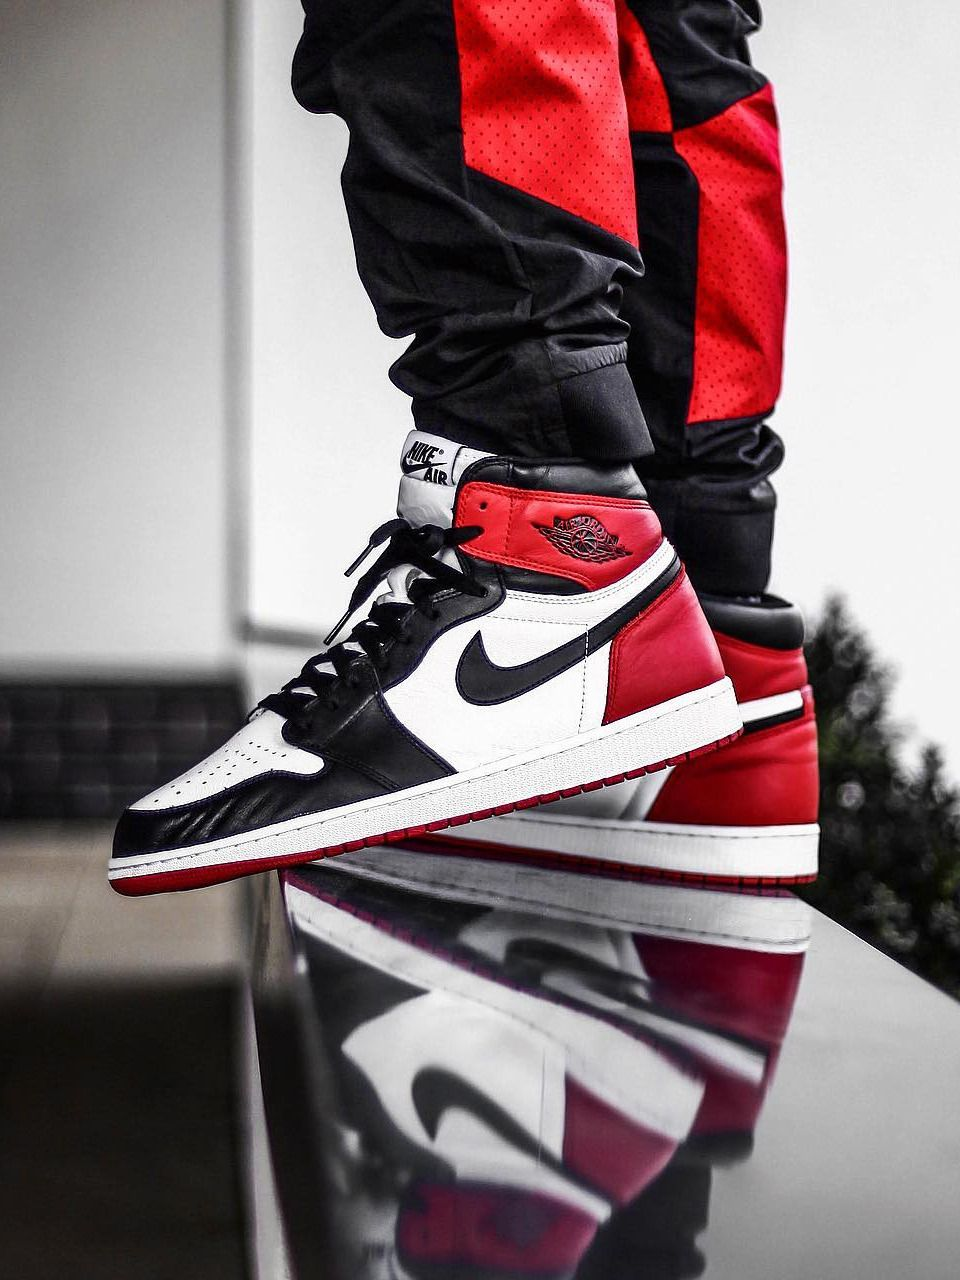 2e19b090f268 Nike Air Jordan 1 Retro Black Toe - 2016 (by nineteen.85)